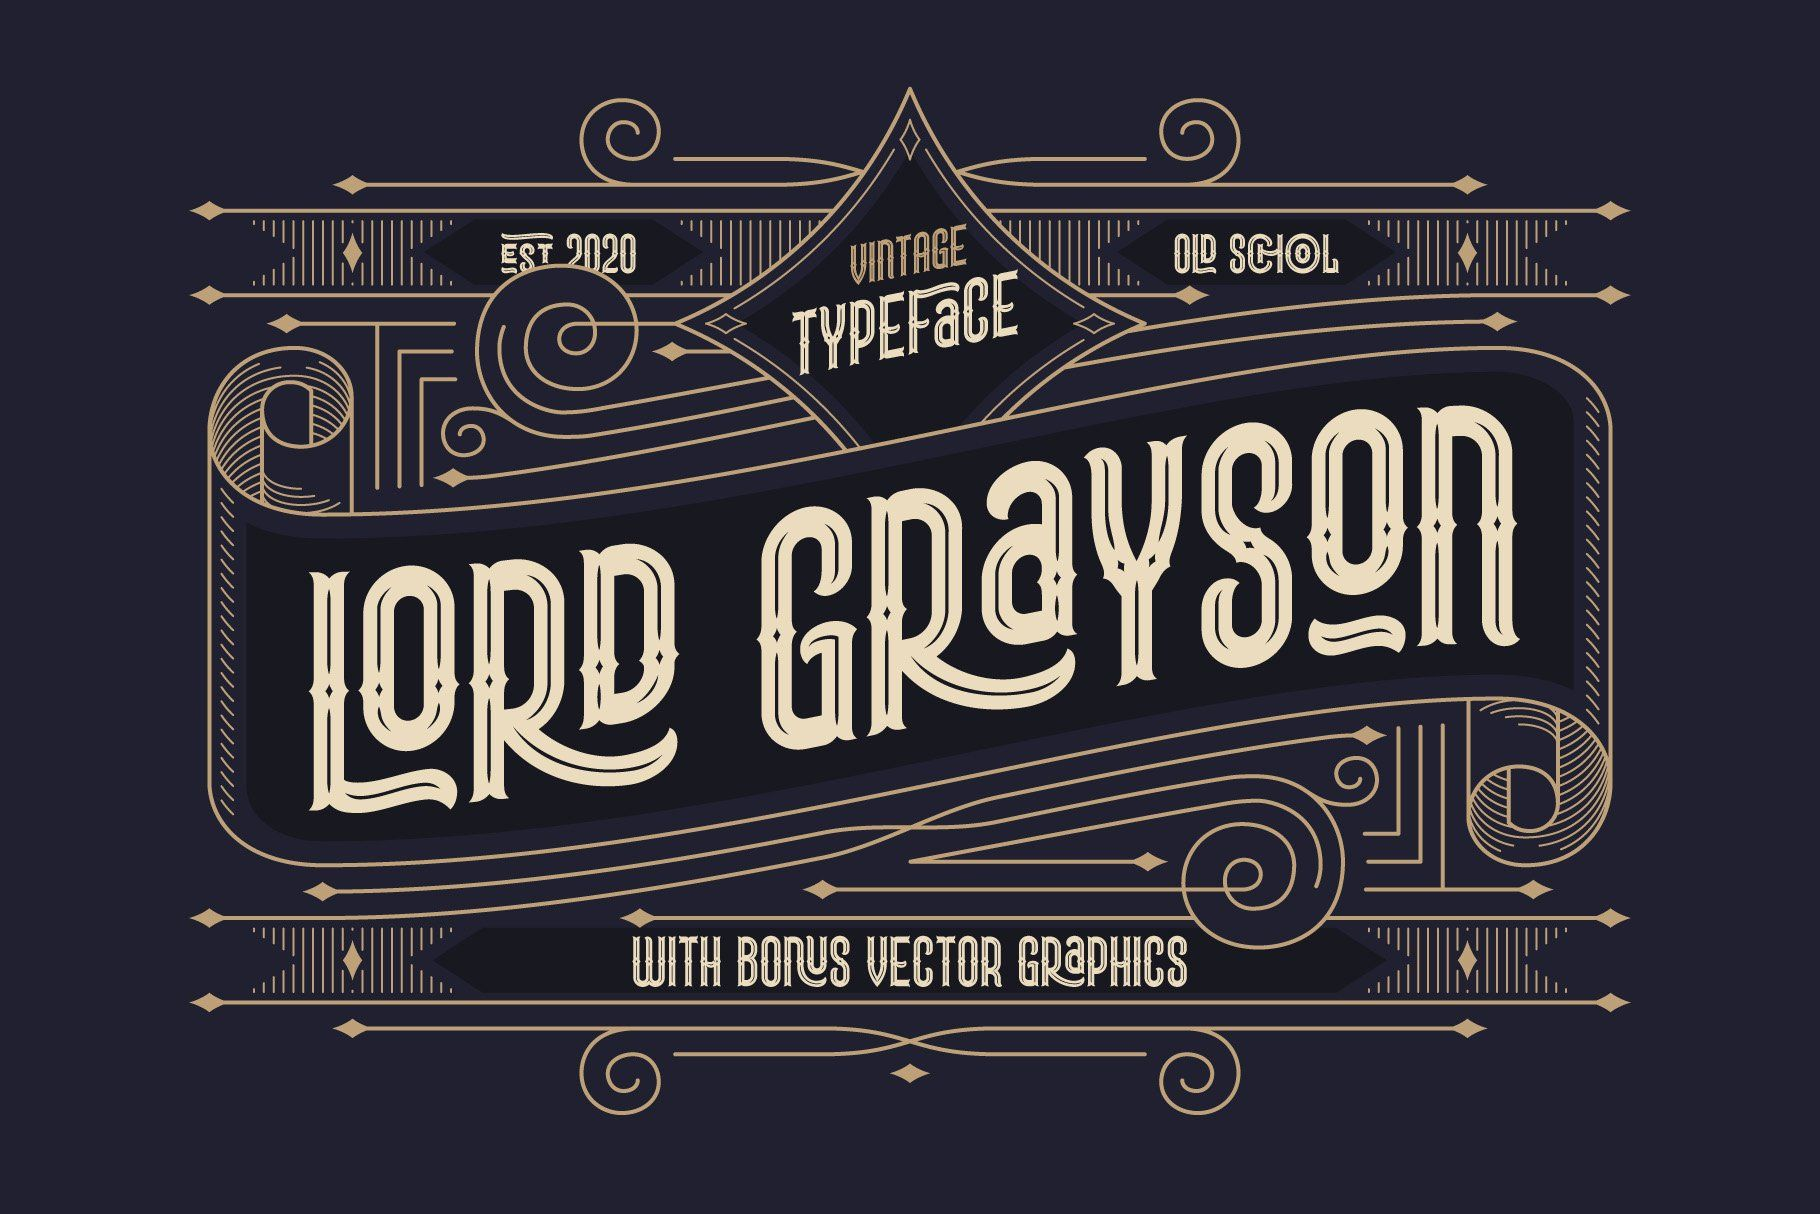 Lord Grayson Font And Template In 2020 Unique Lettering Vintage Fonts Font Packs